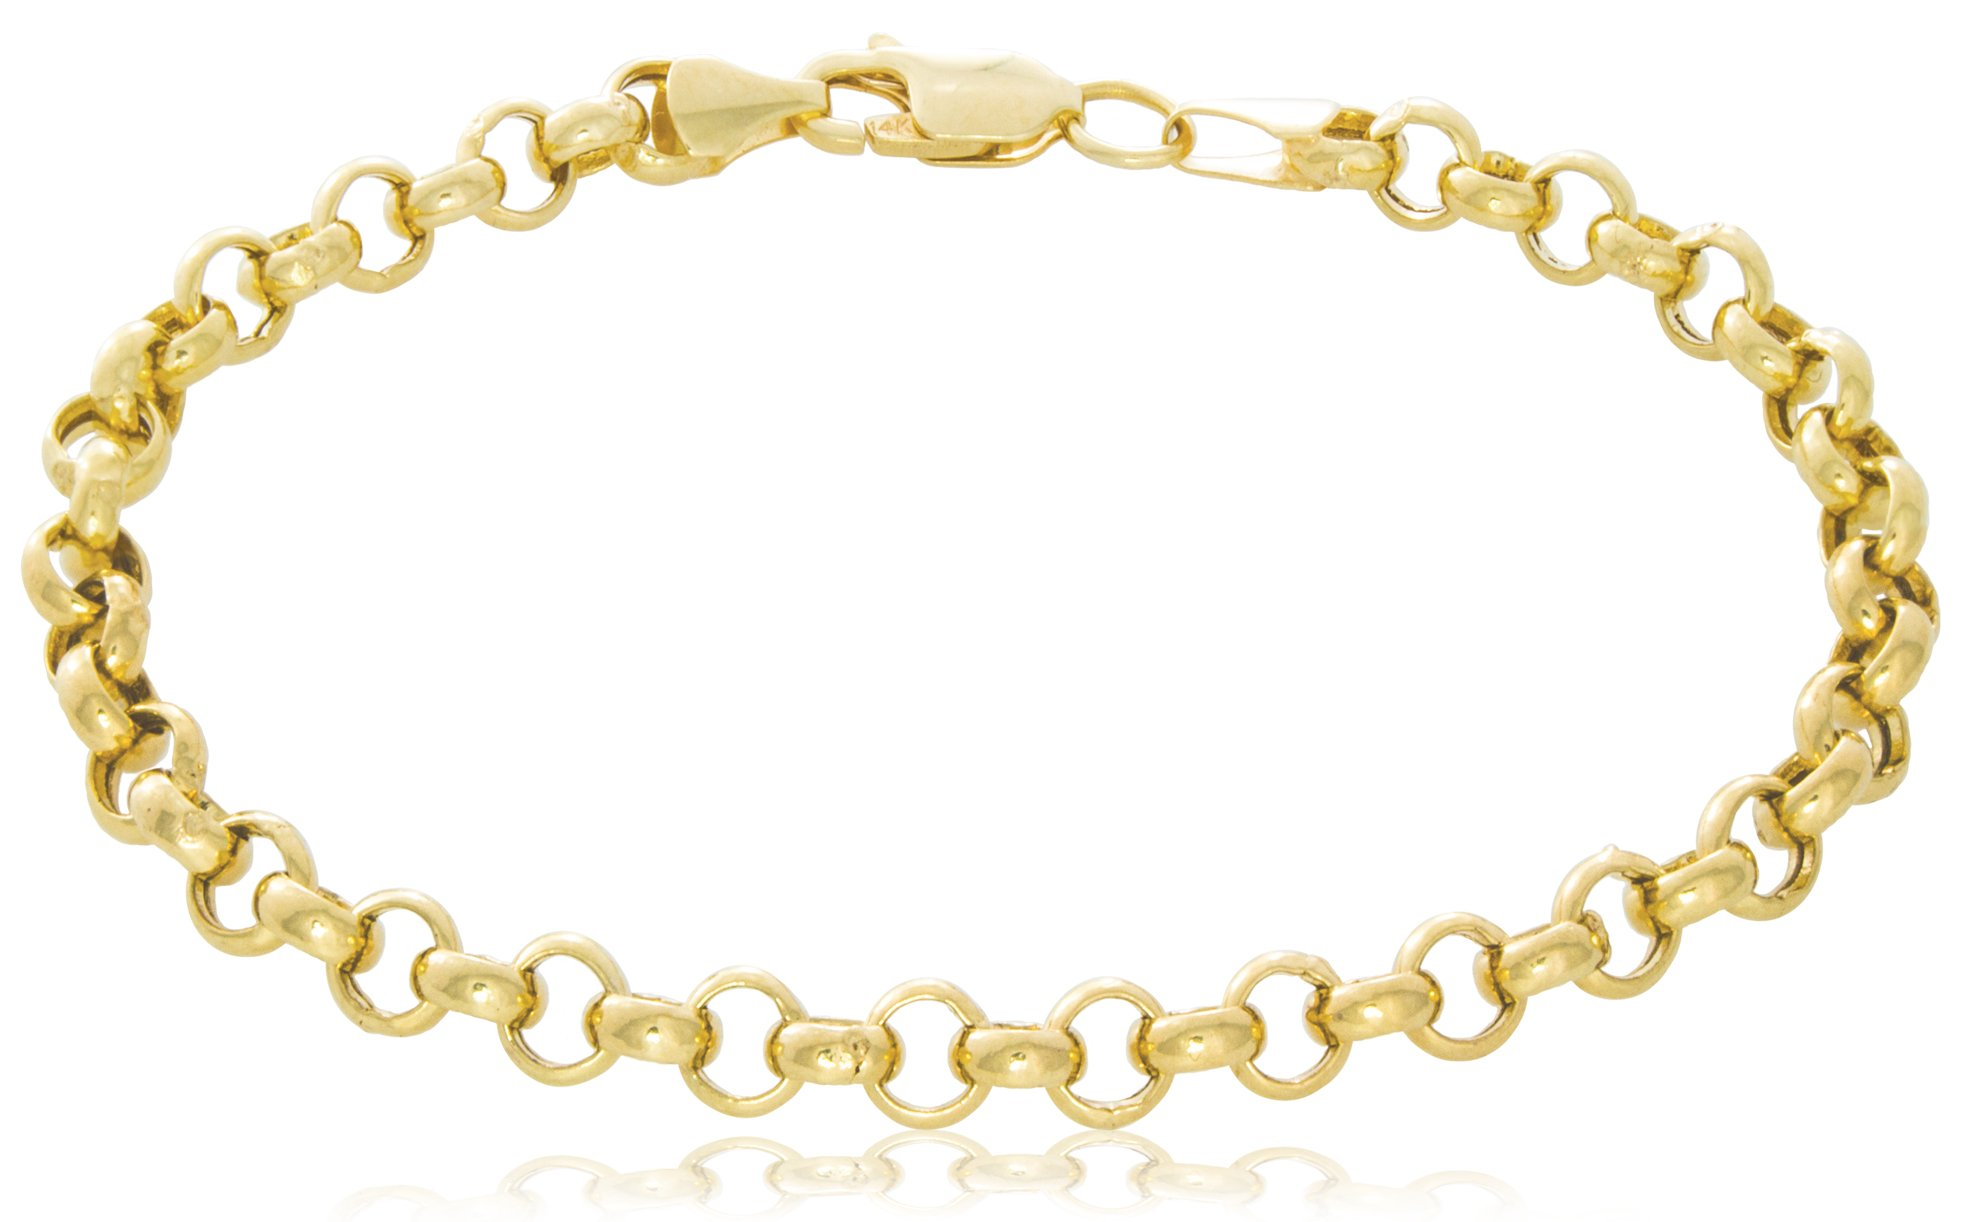 14K Yellow Gold Rolo Chain Bracelet | 5mm Wide Hollow Link | Length 7'' | 4.4g